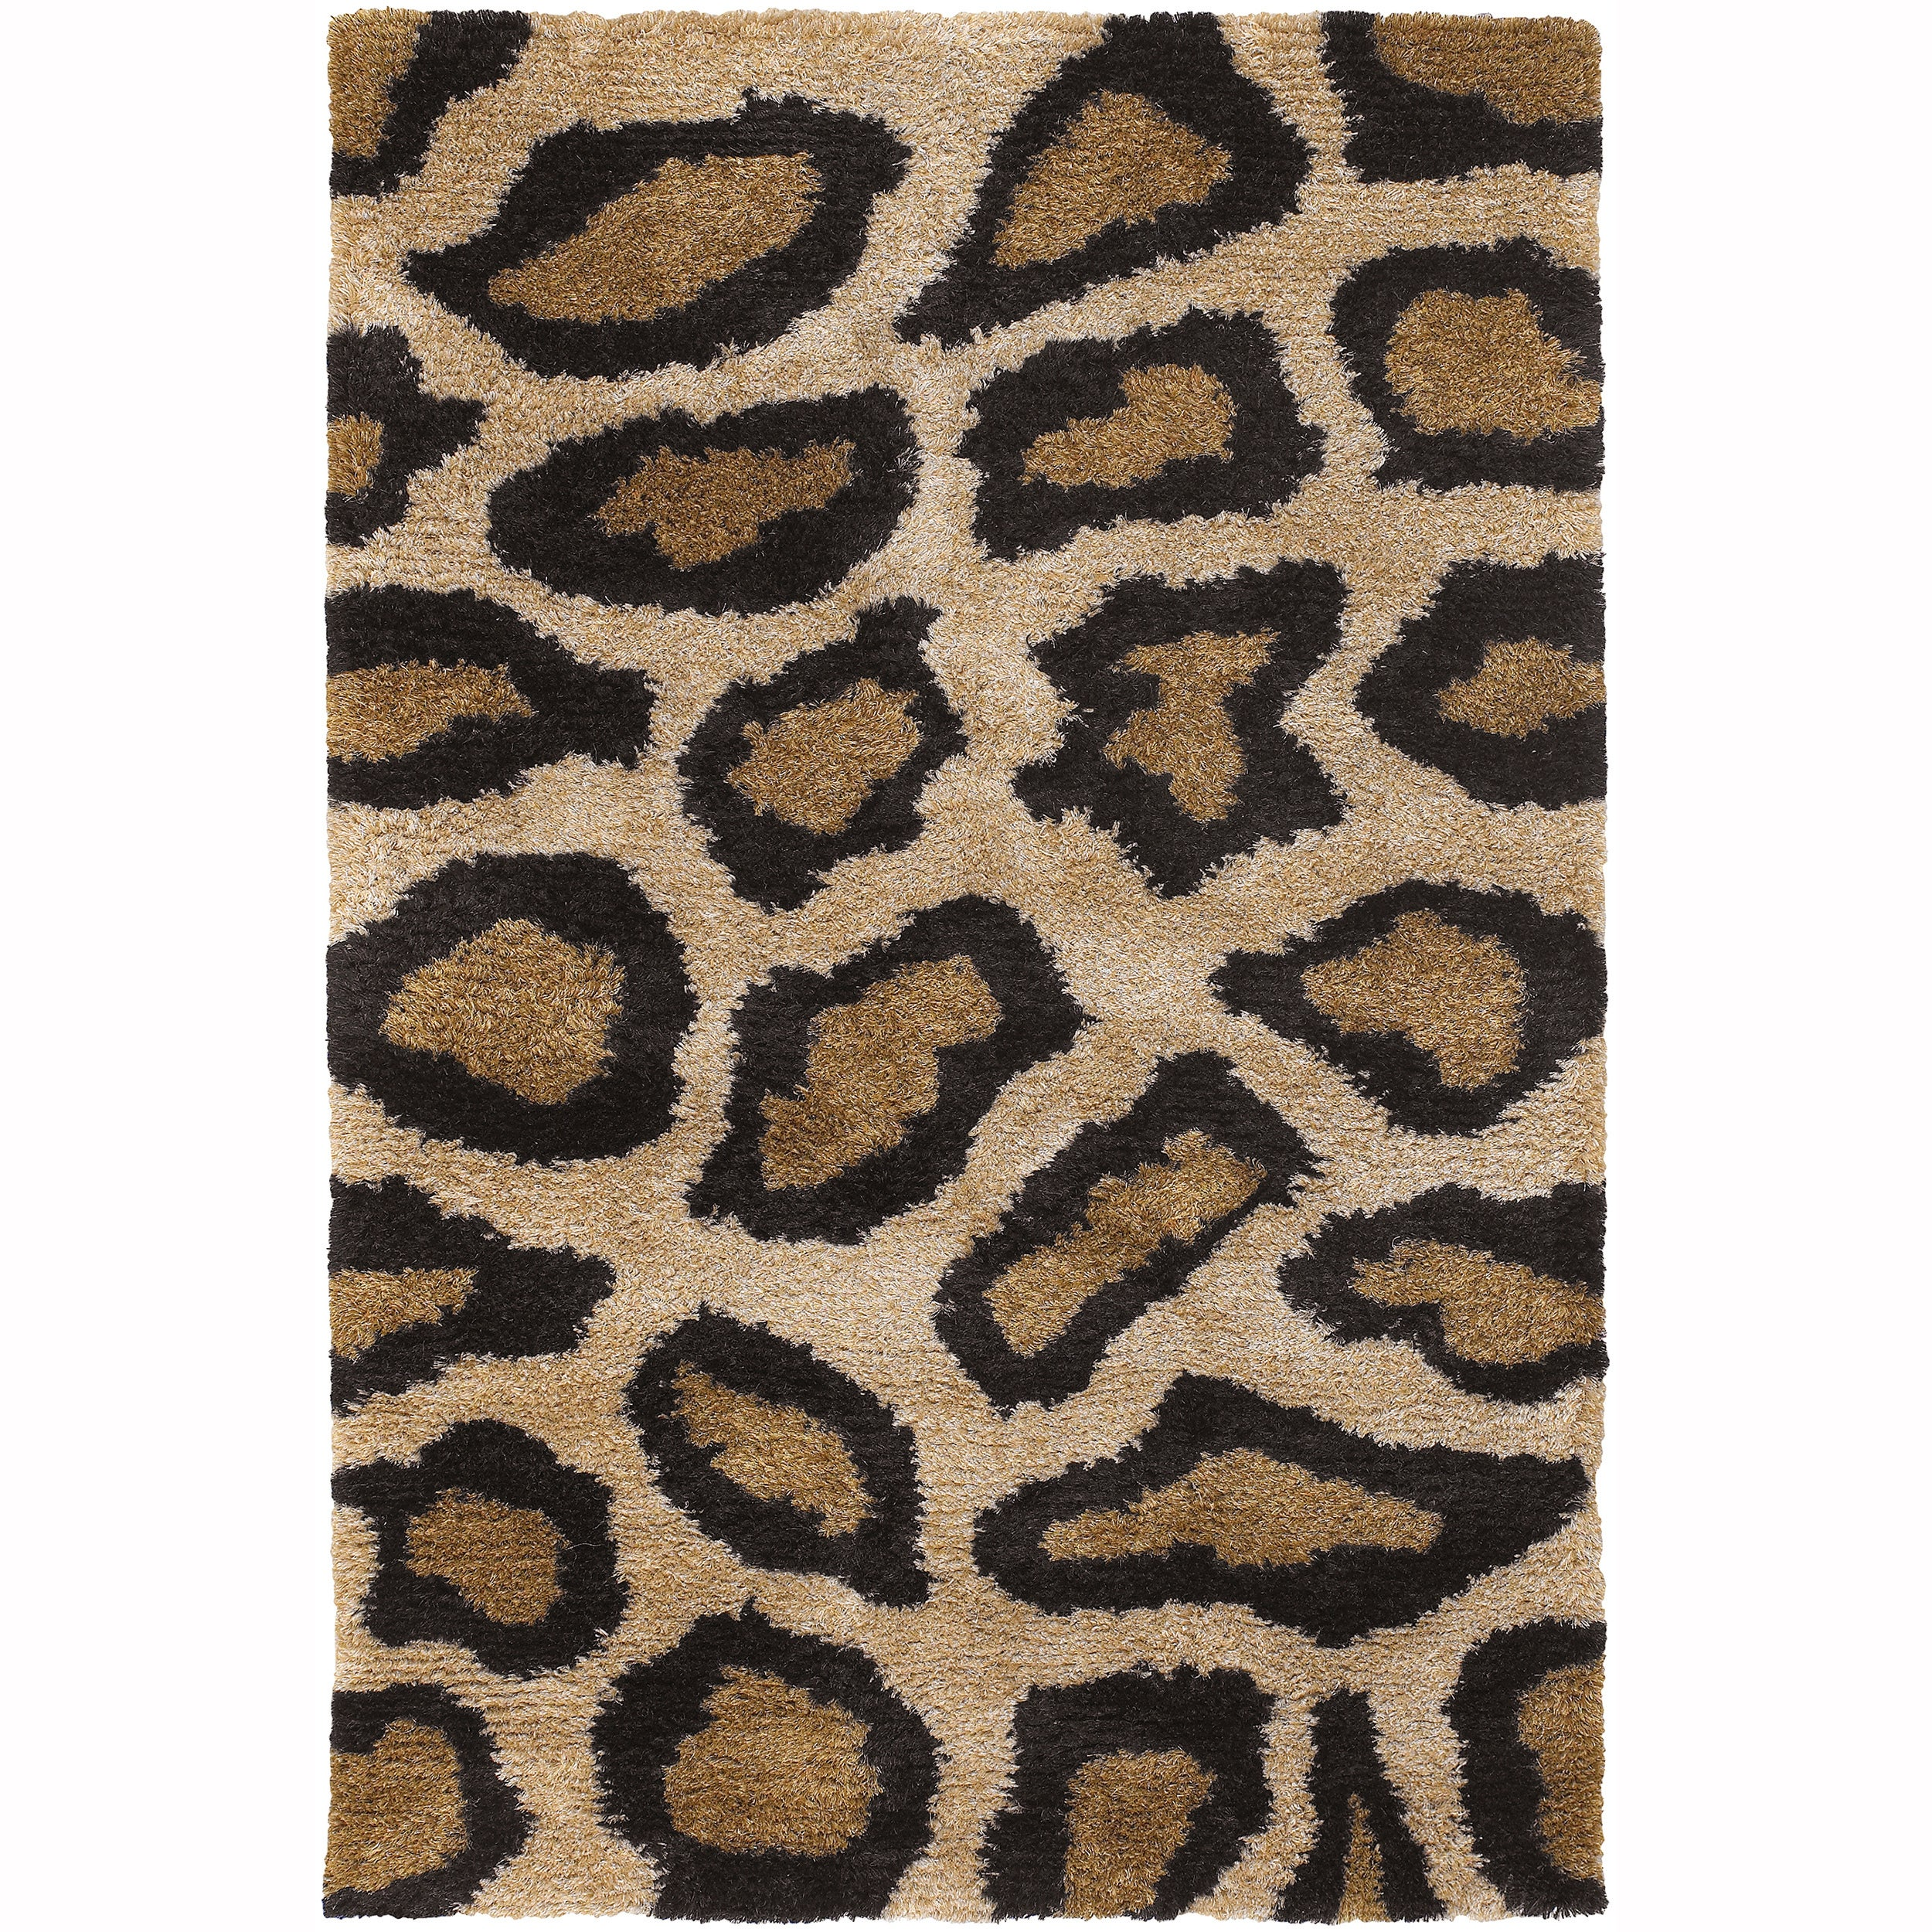 Animal Area Rugs Online At